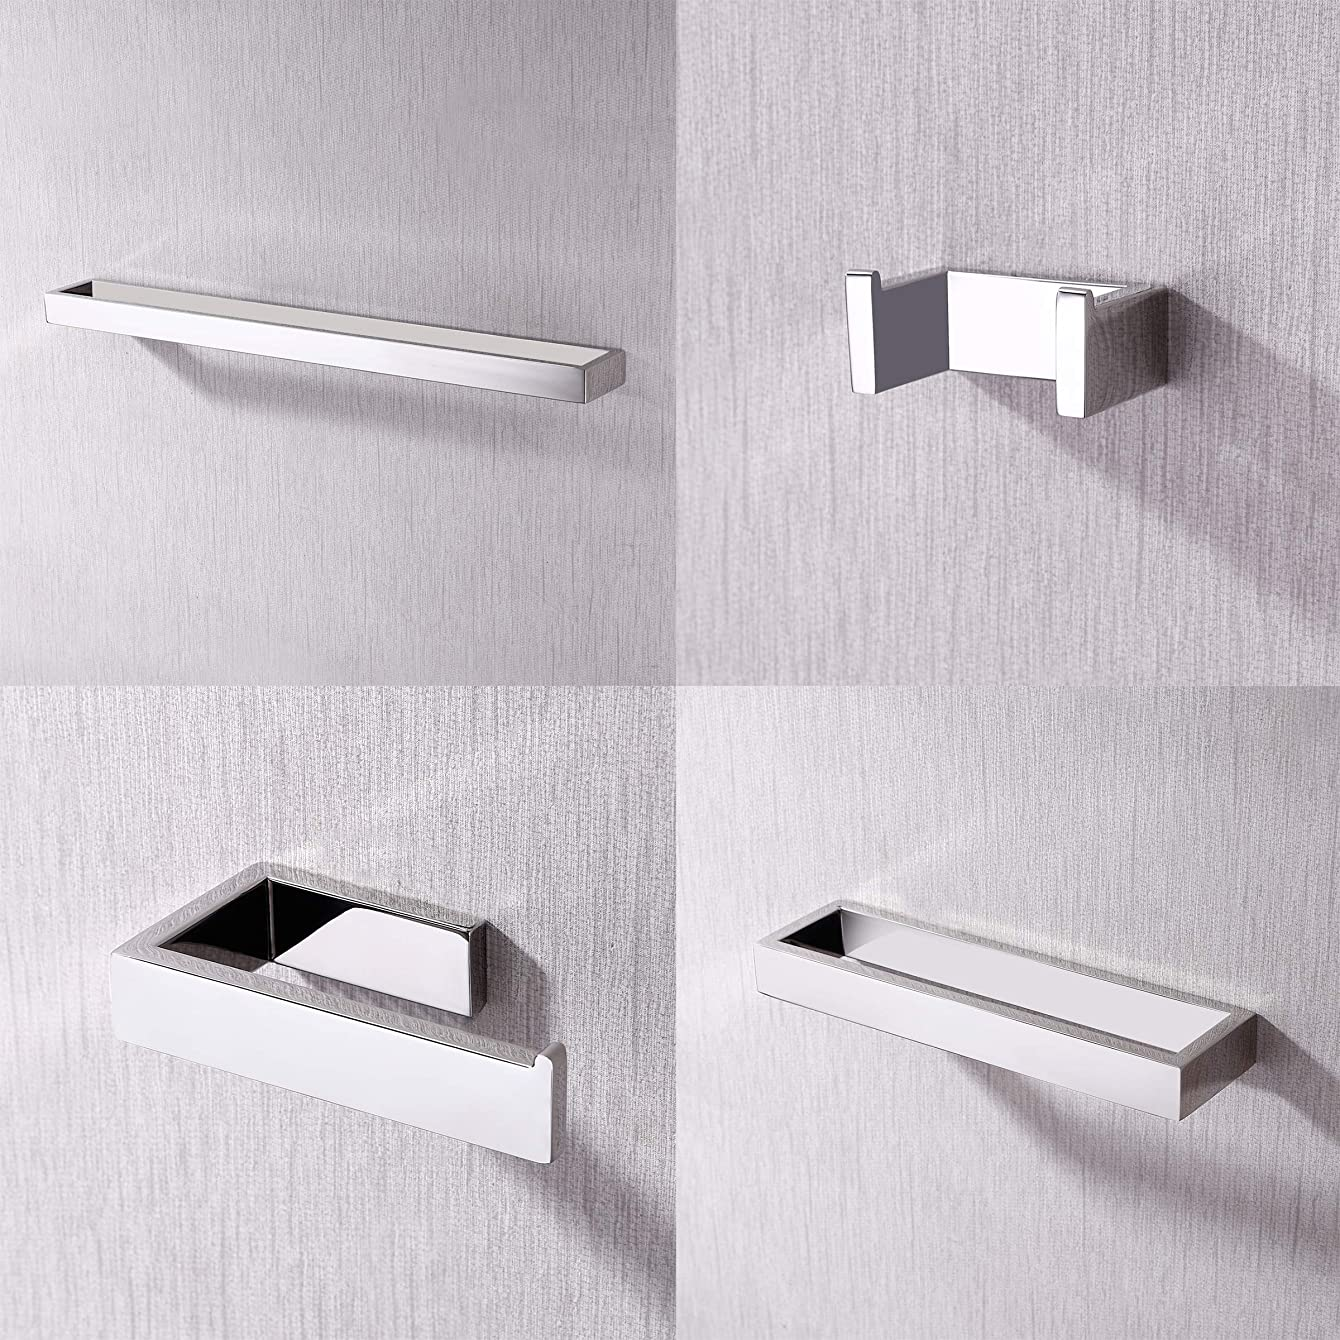 Kes 4-Piece Bathroom Accessory Set RUSTPROOF Wall Mount Polished SUS 304 Stainless Steel, LA2300-42